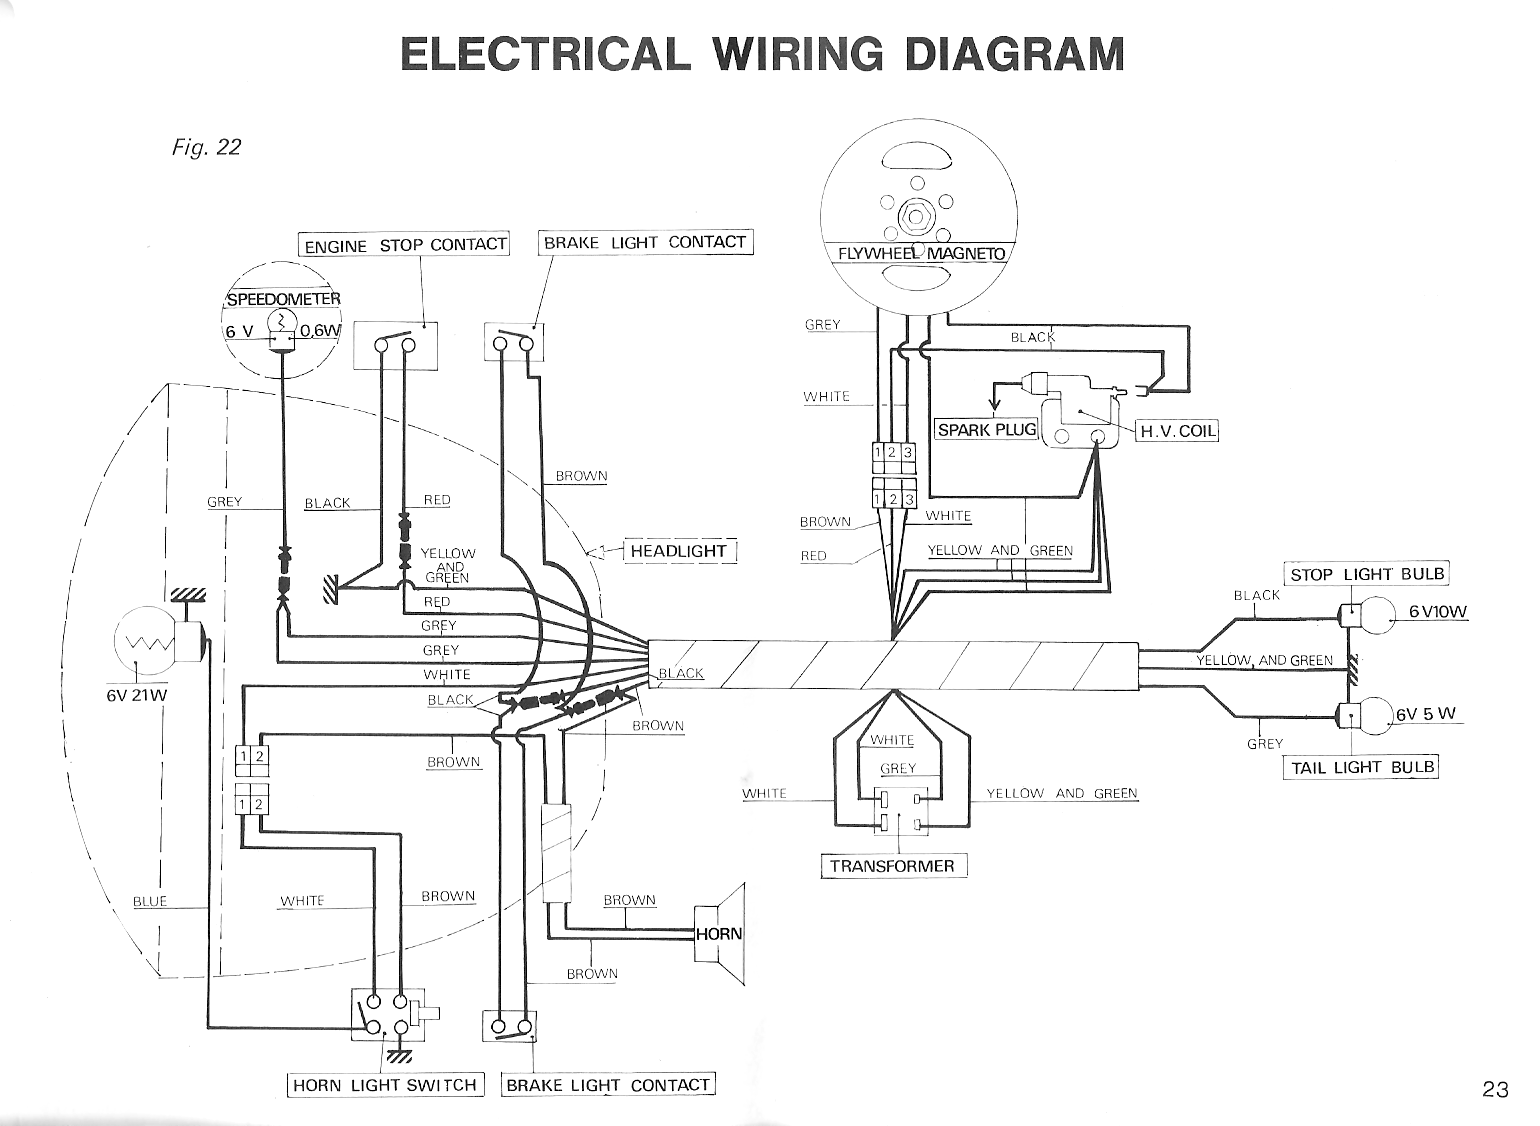 Peugeot Wiring Diagrams Moped Wiki 6v Generator Diagram 102 1